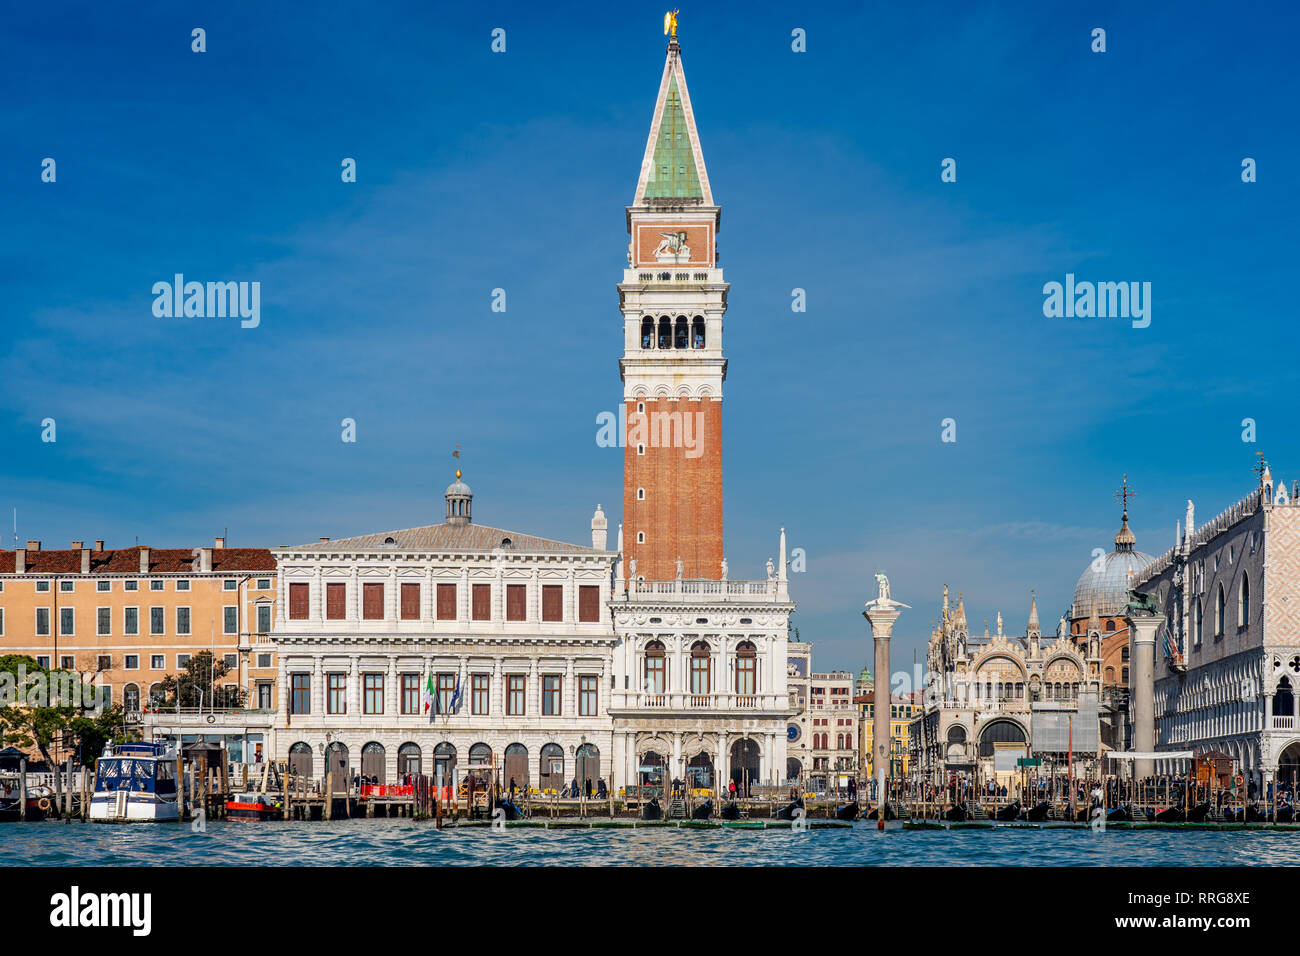 Views of St Mark's Campanile and the Doge's Palace in Venice. From a series of travel photos in Italy. Photo date: Monday, February 11, 2019. Photo: R Stock Photo